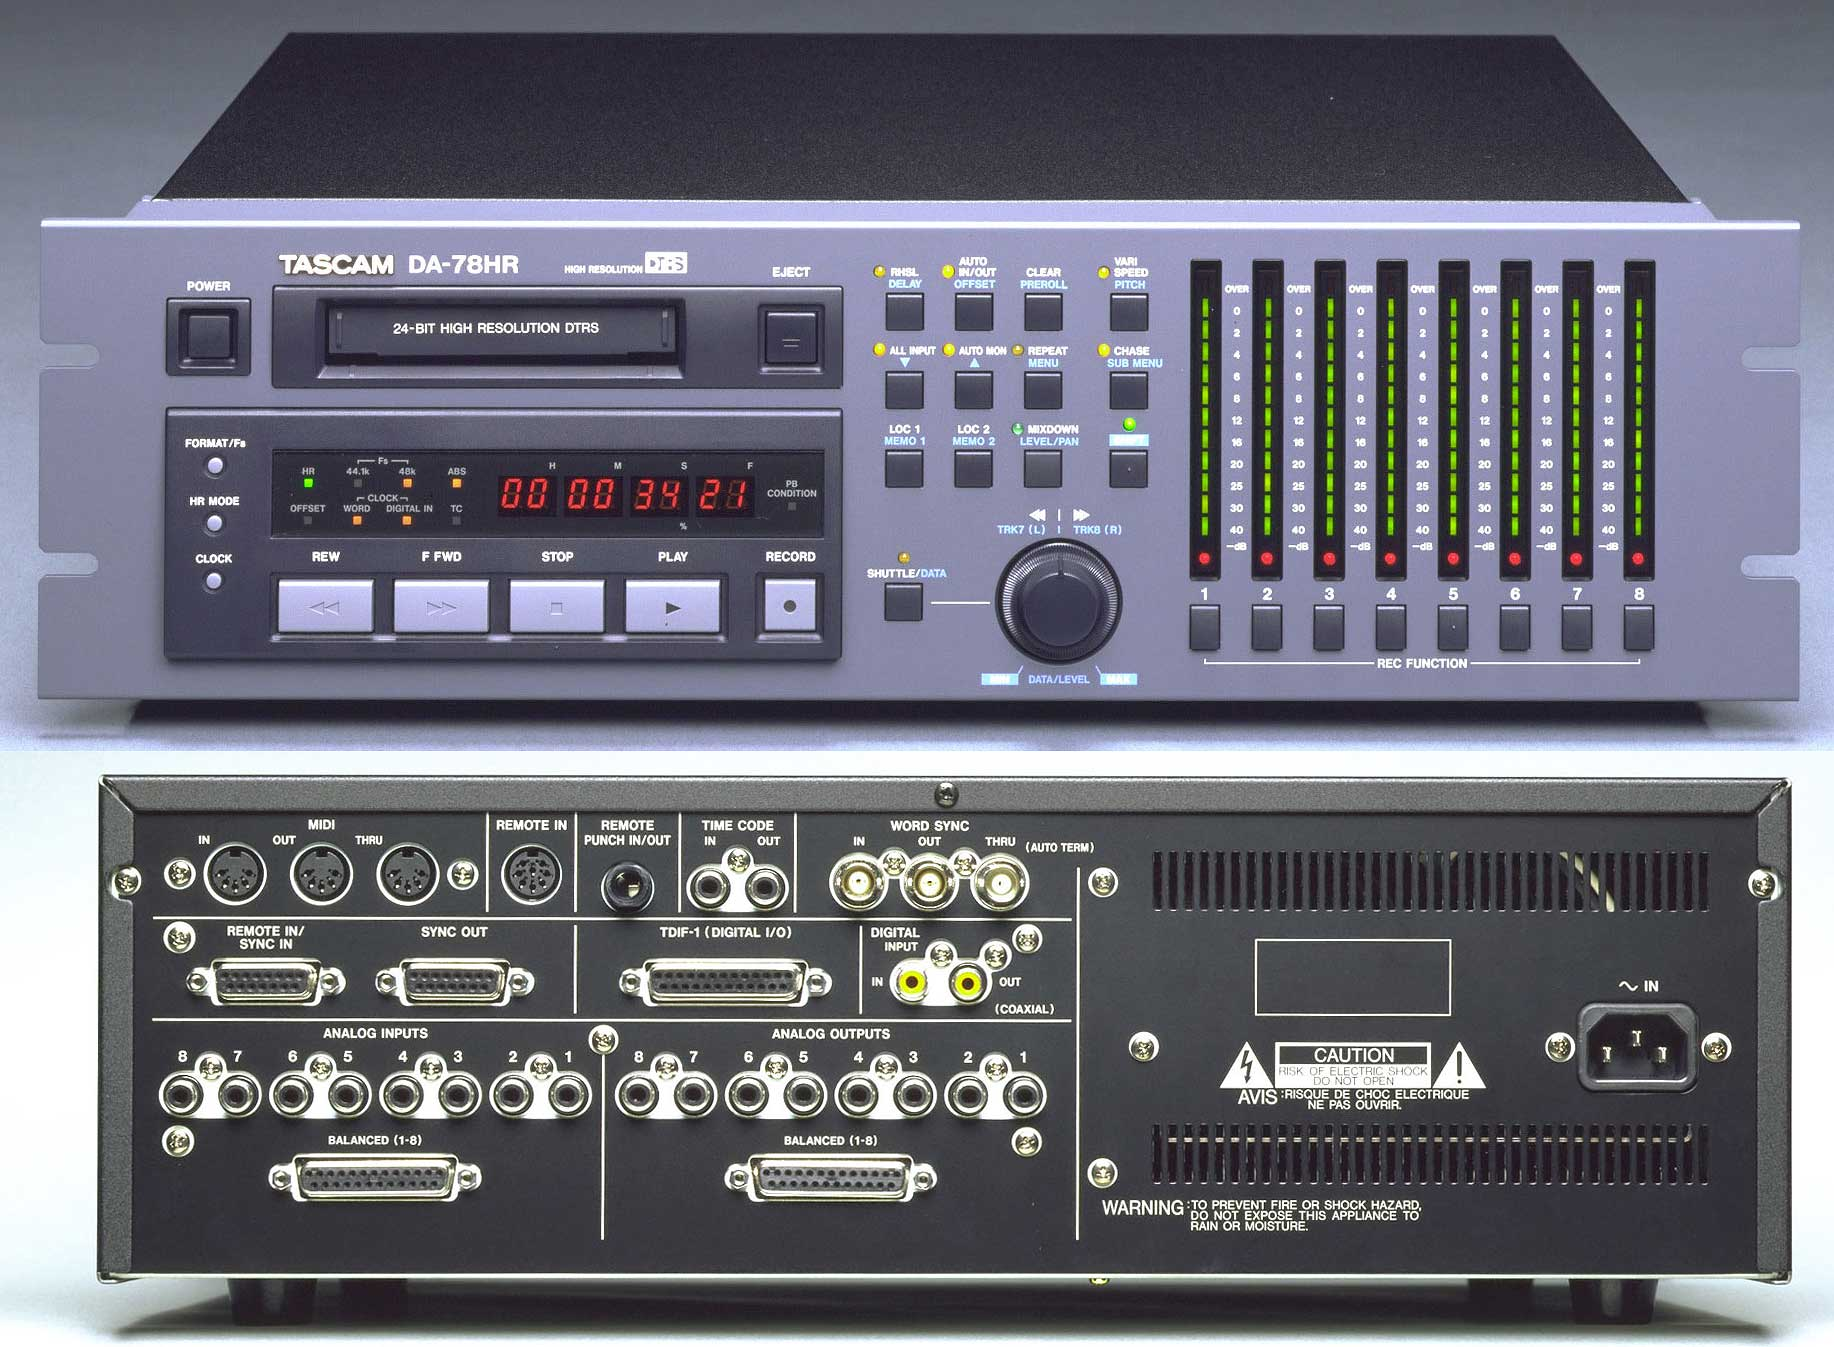 864209 What Daw Controller Mixer together with Productdetails fprodid 18955 item Bose SP24 besides 864209 What Daw Controller Mixer further Productdetails fprodid 5915 item American DJ DMX OPERATOR 192 likewise Item. on tascam digital audio mixers